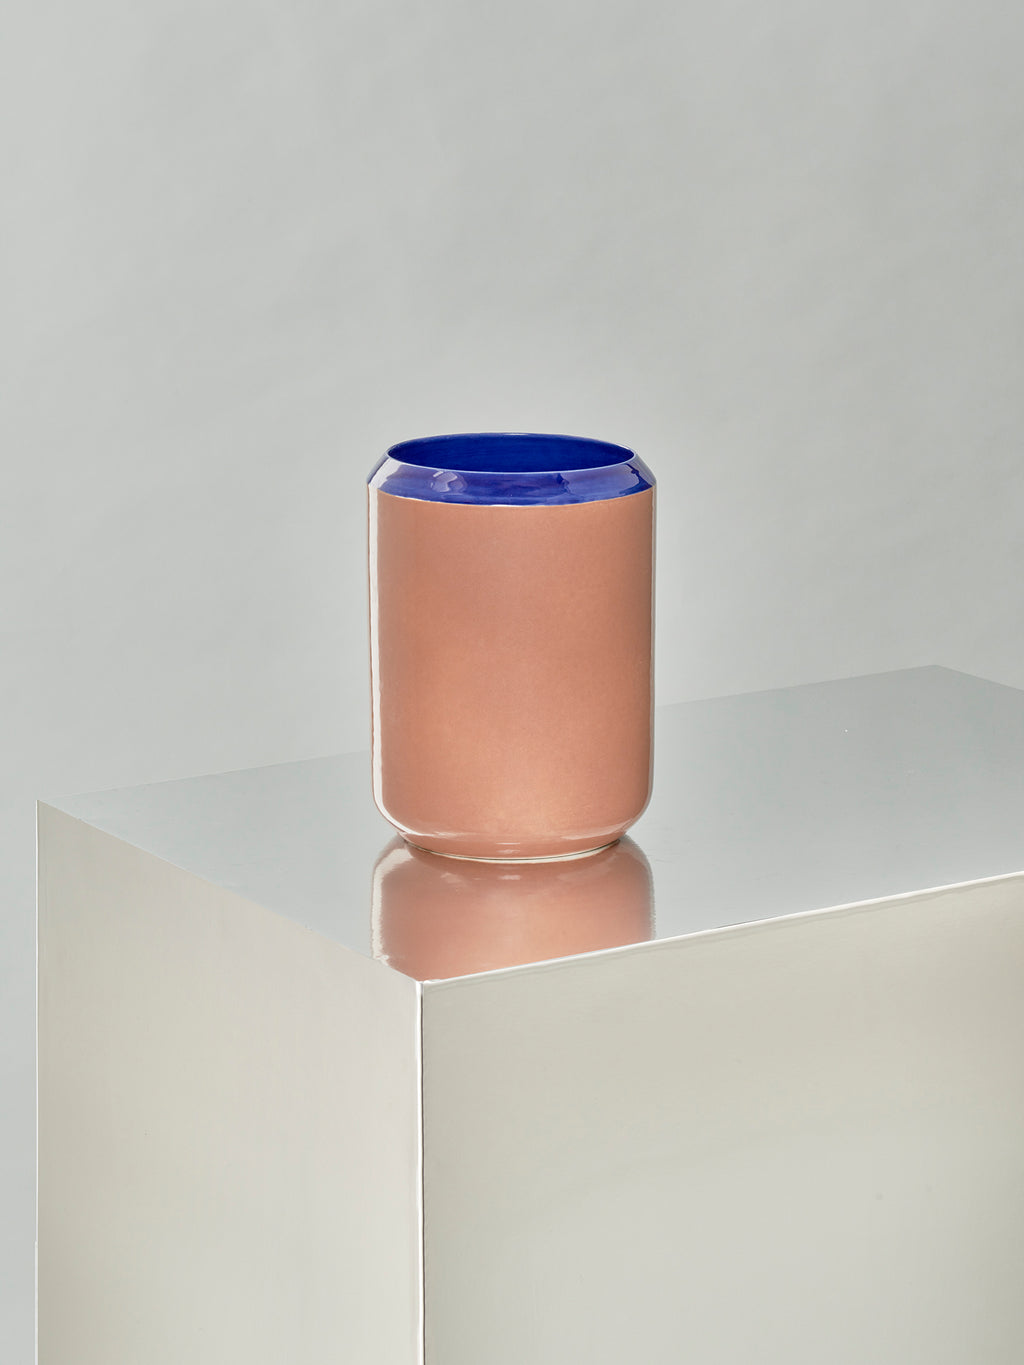 Into Each Other - Vase 1 - Blue and Brick